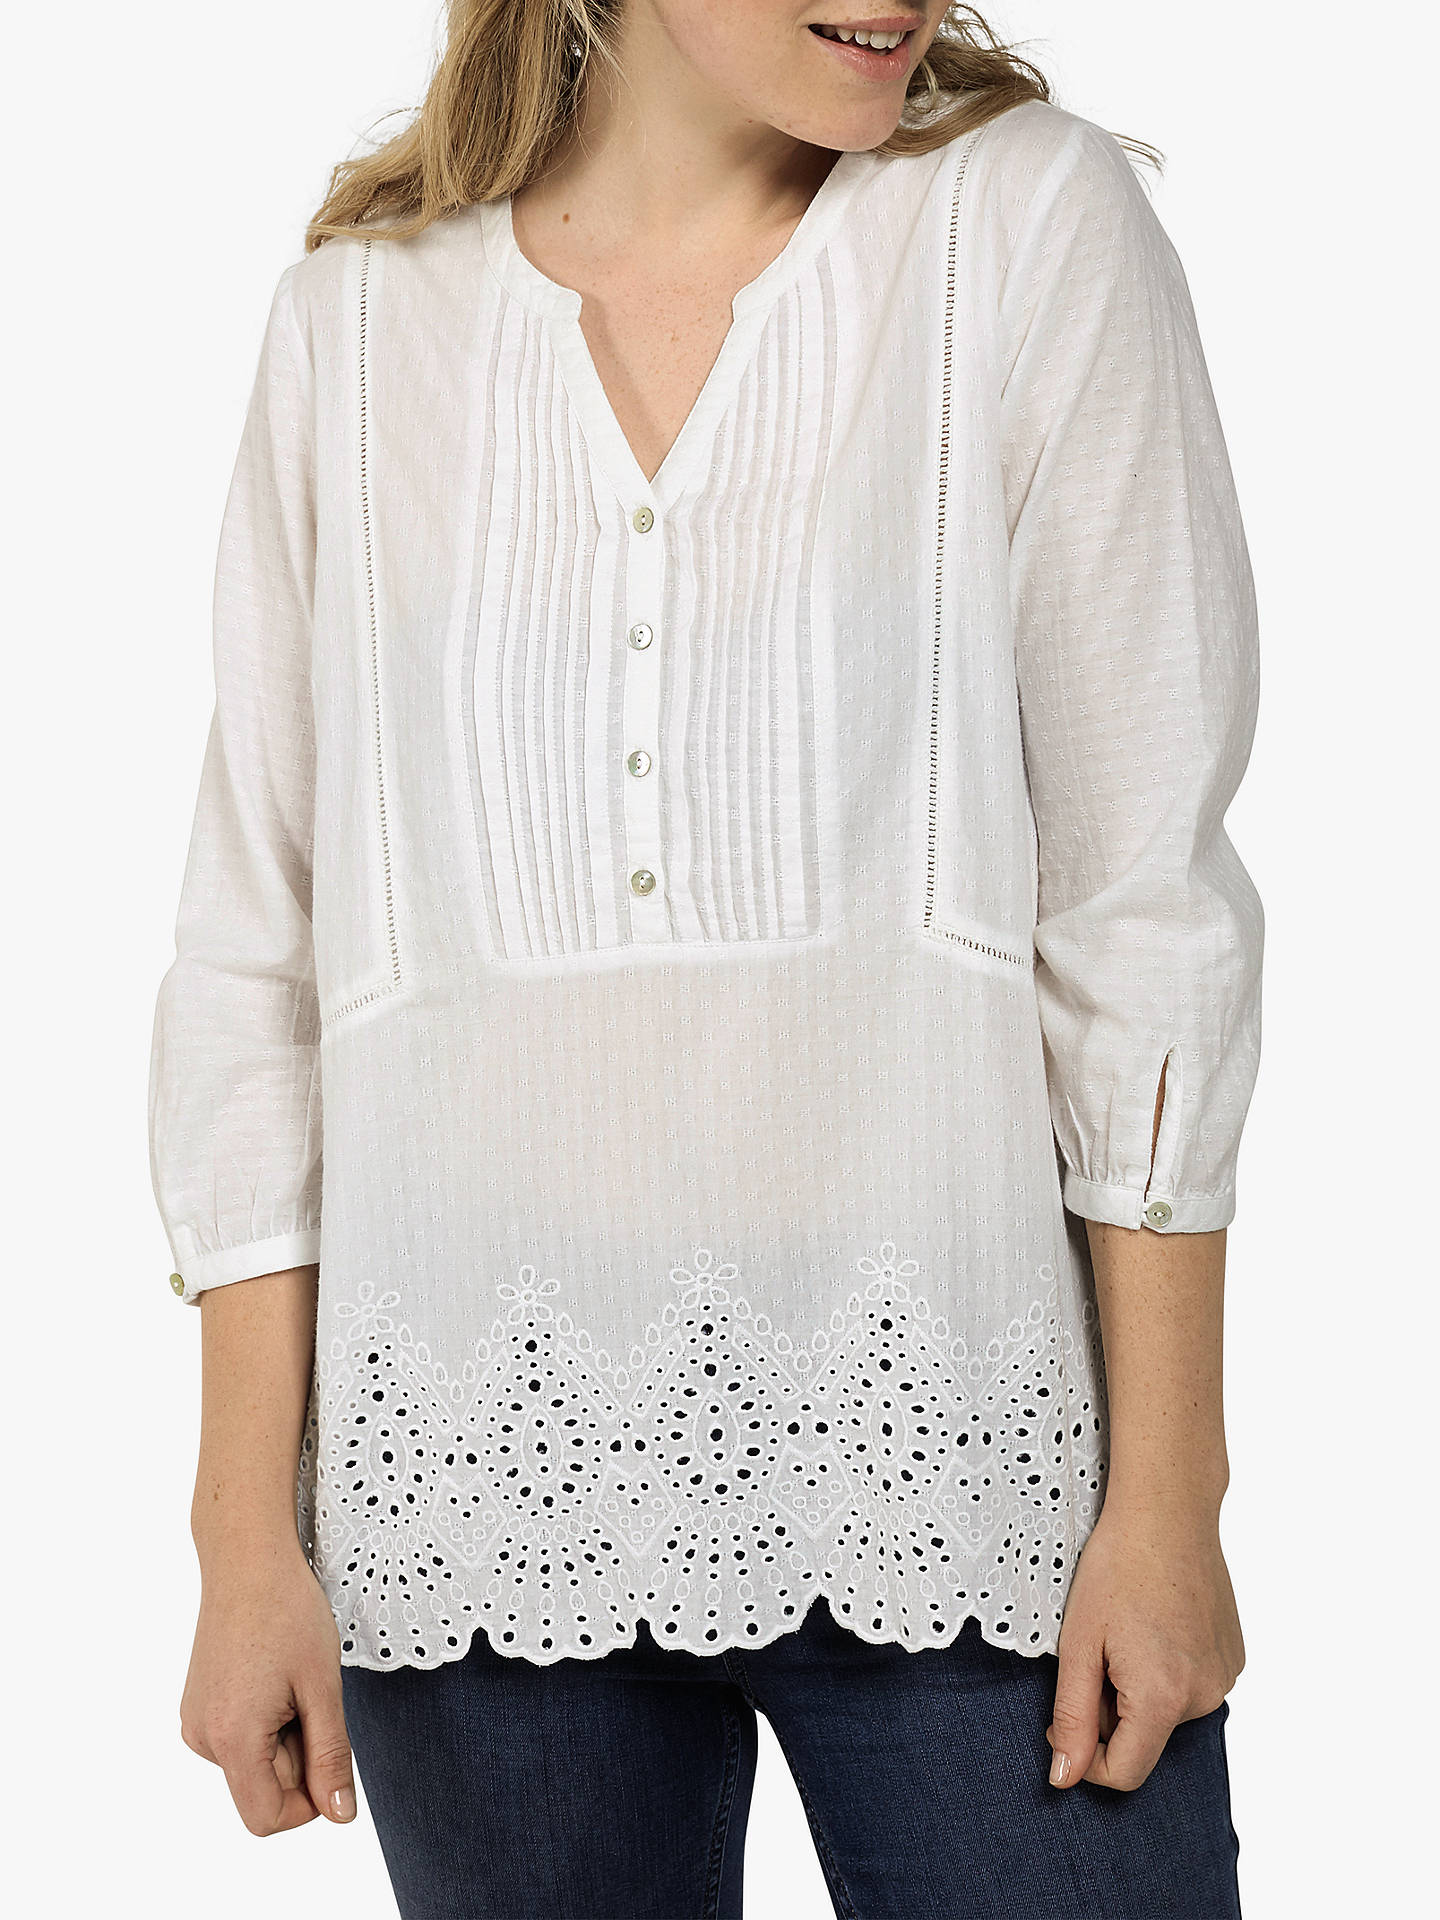 a73d318e63d Buy Fat Face Jolene Popover Embroidered Tunic Top, White, 6 Online at  johnlewis.